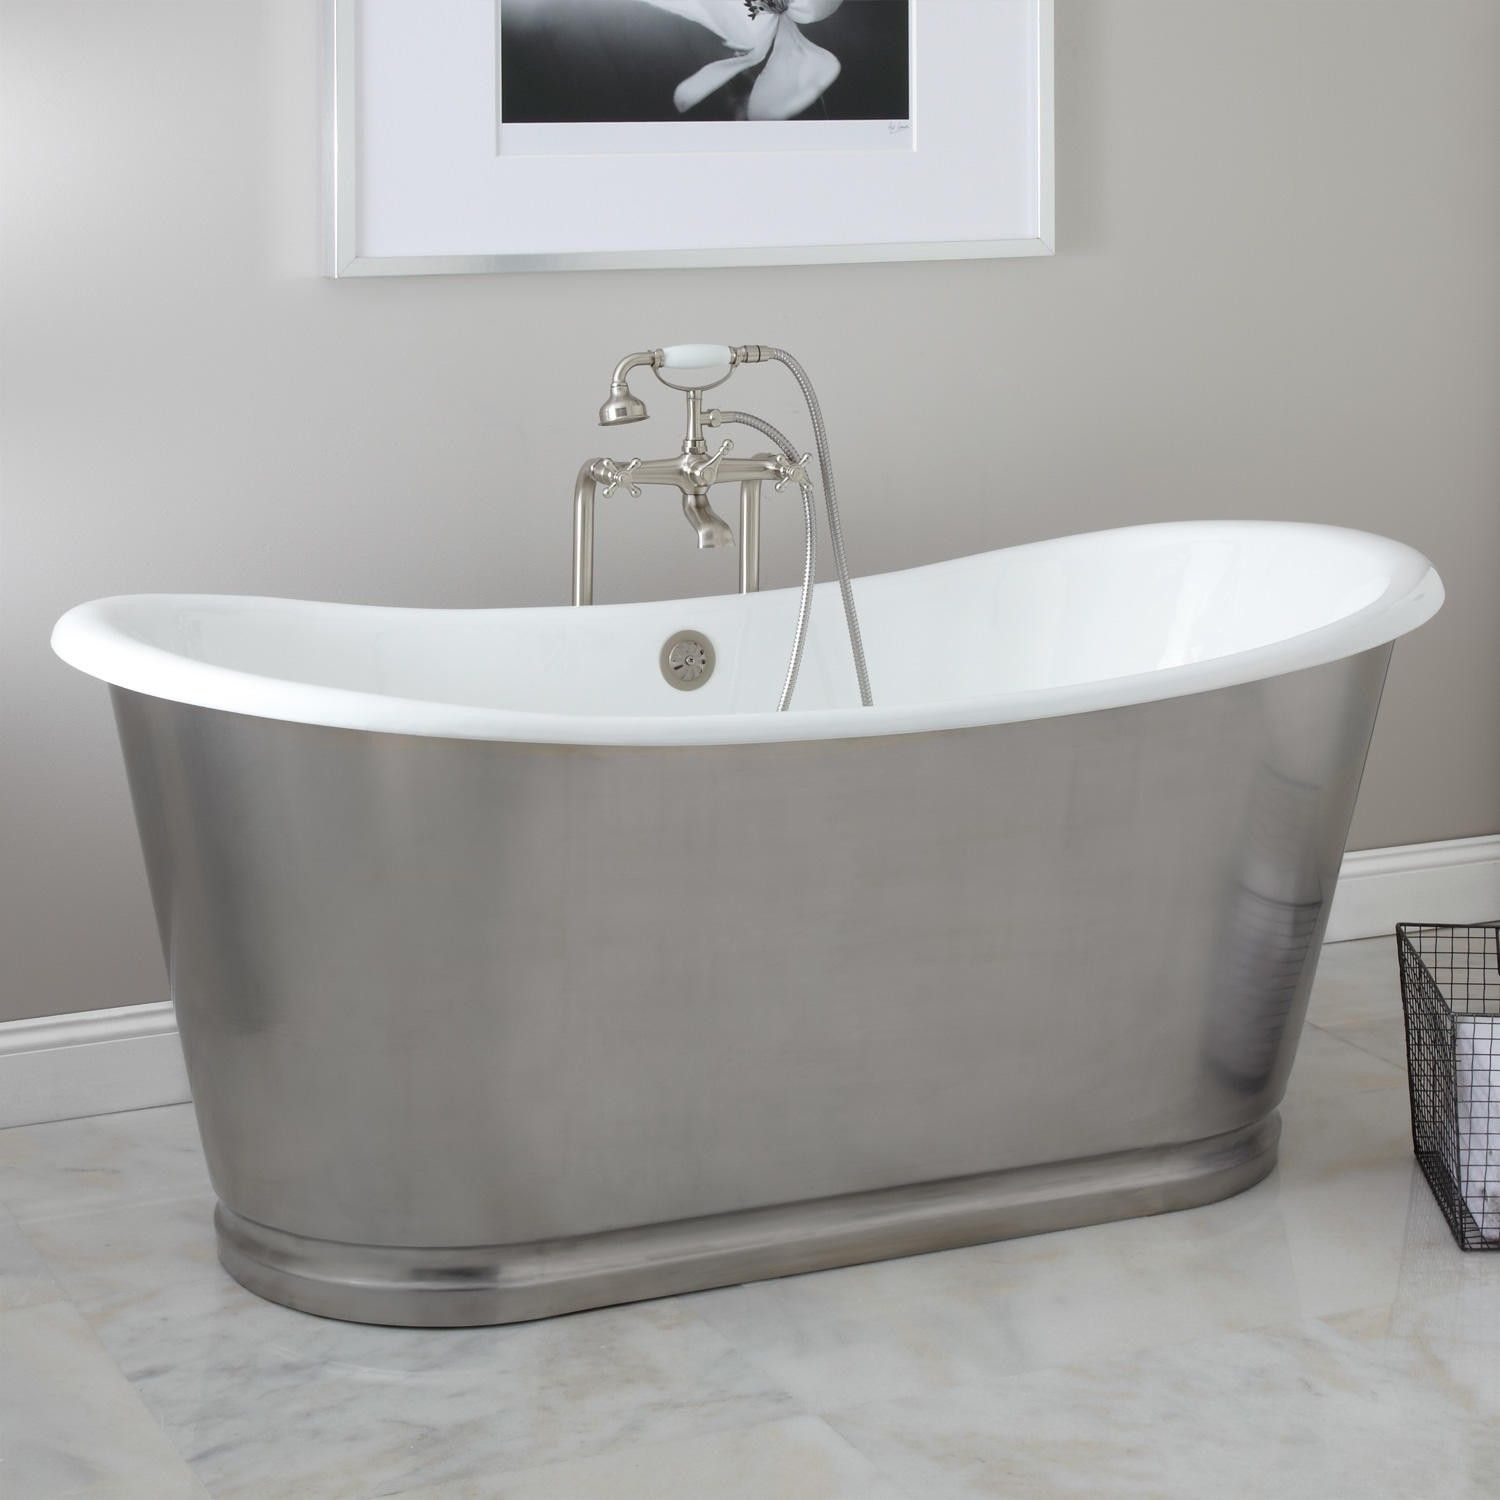 66 Dorset Bateau Cast Iron Skirted Tub Stainless Steel Skirt Amazing Price For This Kind Of 4000